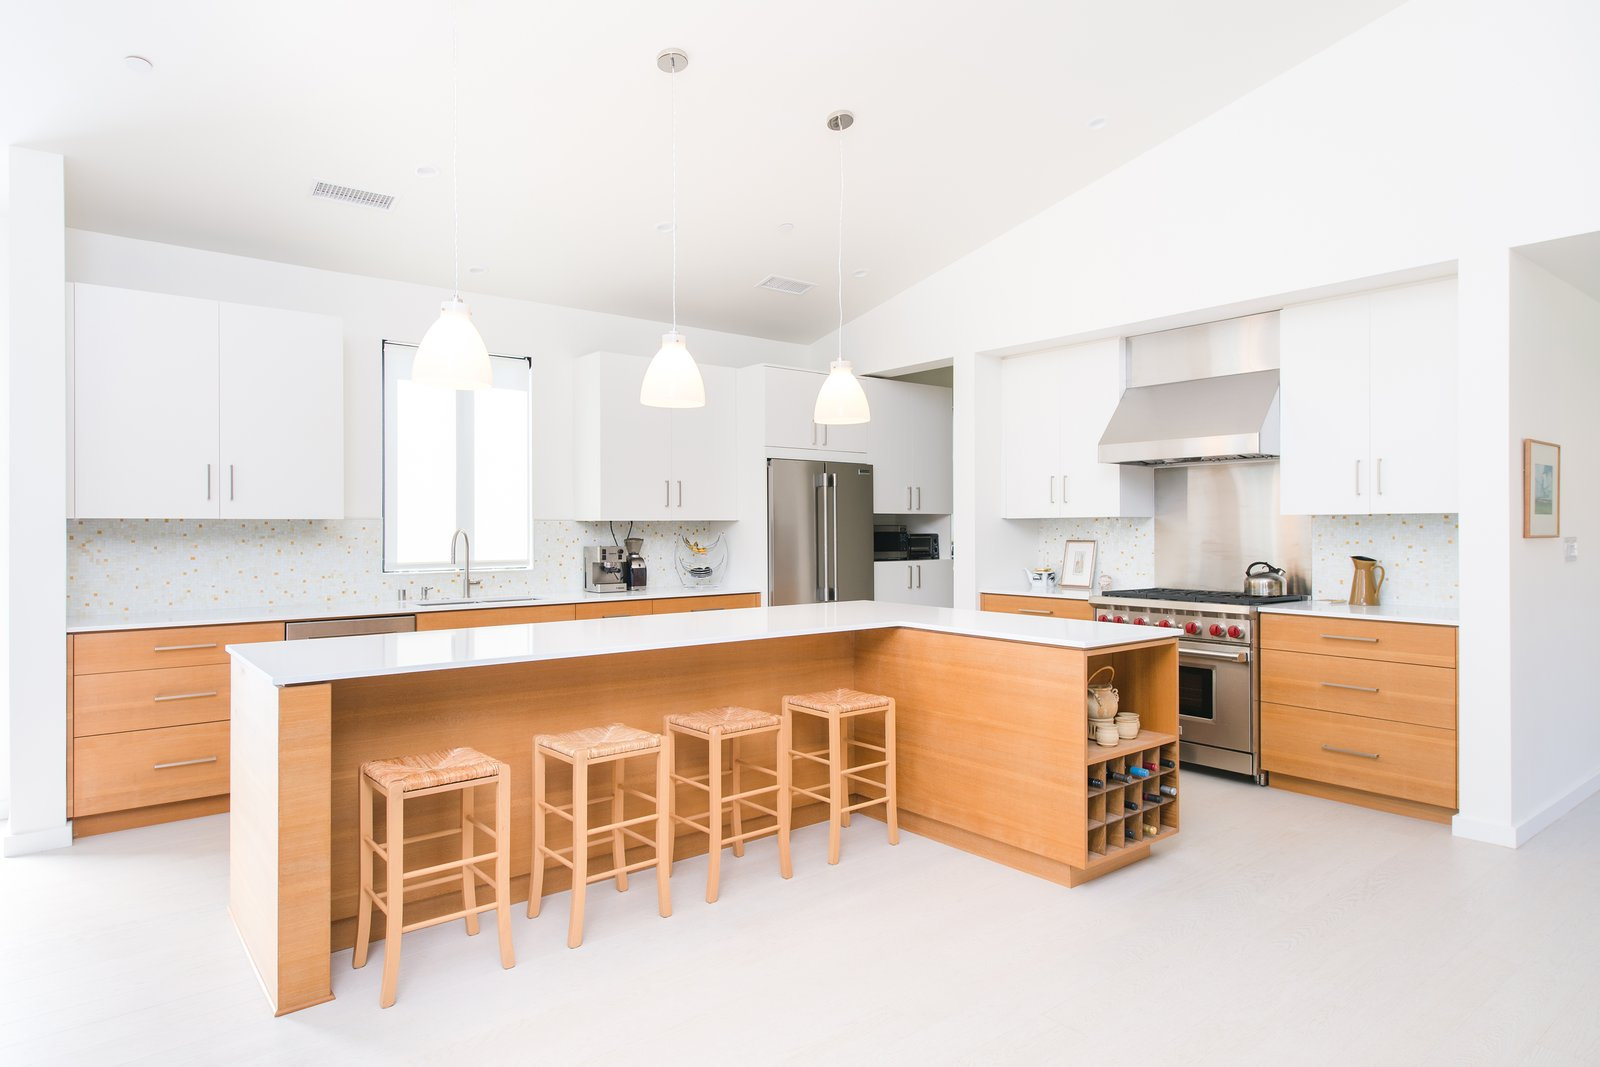 The l-shaped island at the open kitchen encourages gathering while cooking.